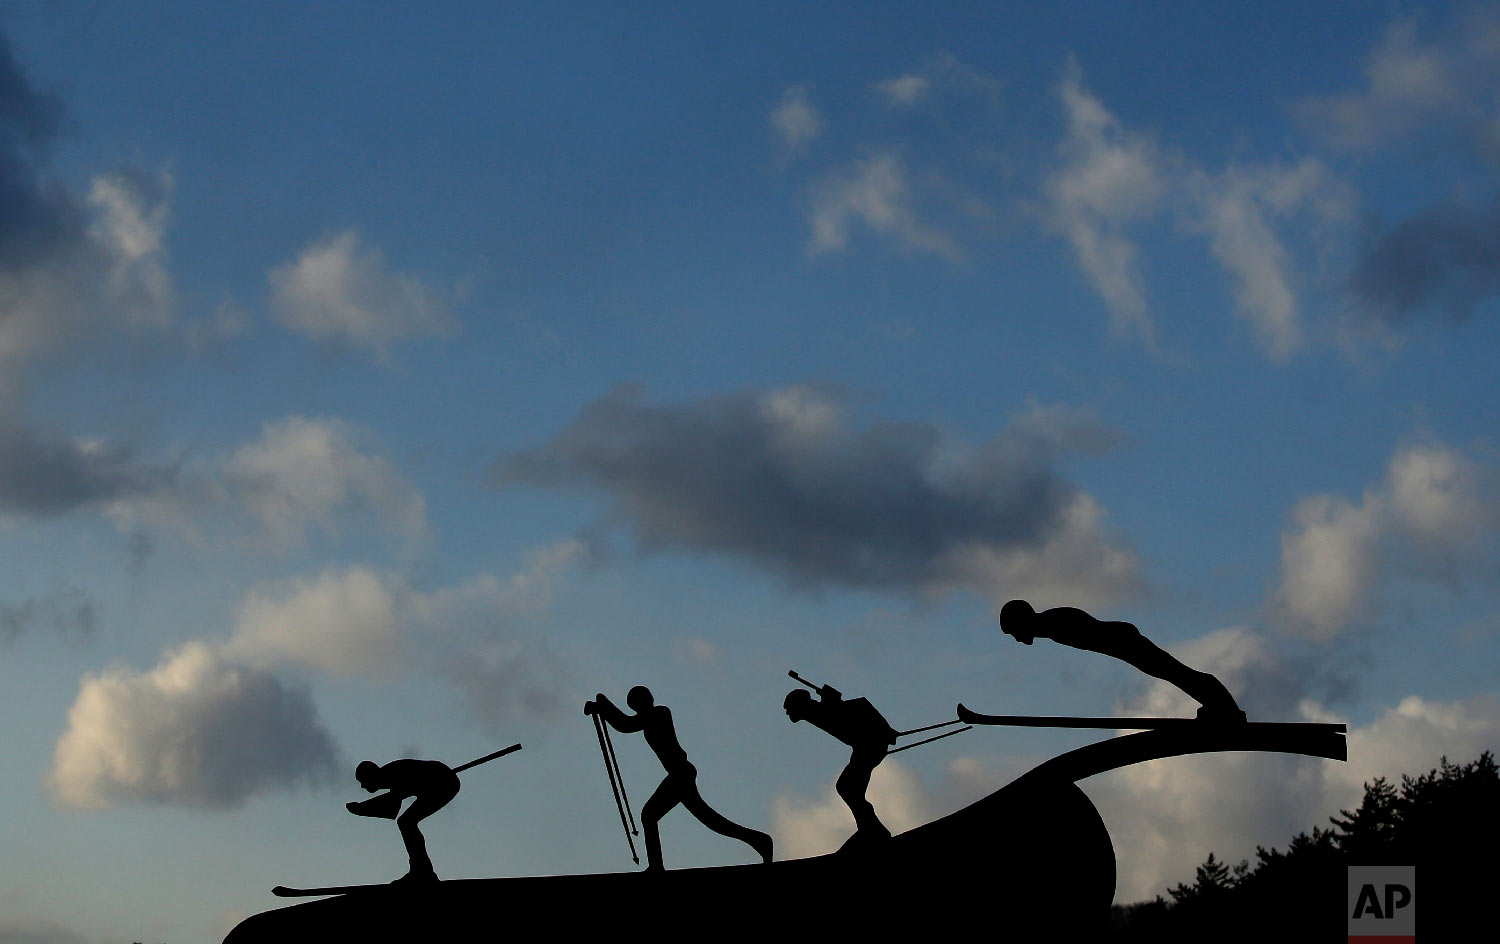 A sculpture of skiers outside the Alpensia Ski Jumping Center is silhouetted against the sky at sunset at the 2018 Winter Olympics in Pyeongchang, South Korea, Friday, Feb. 2, 2018. (AP Photo/Charlie Riedel)